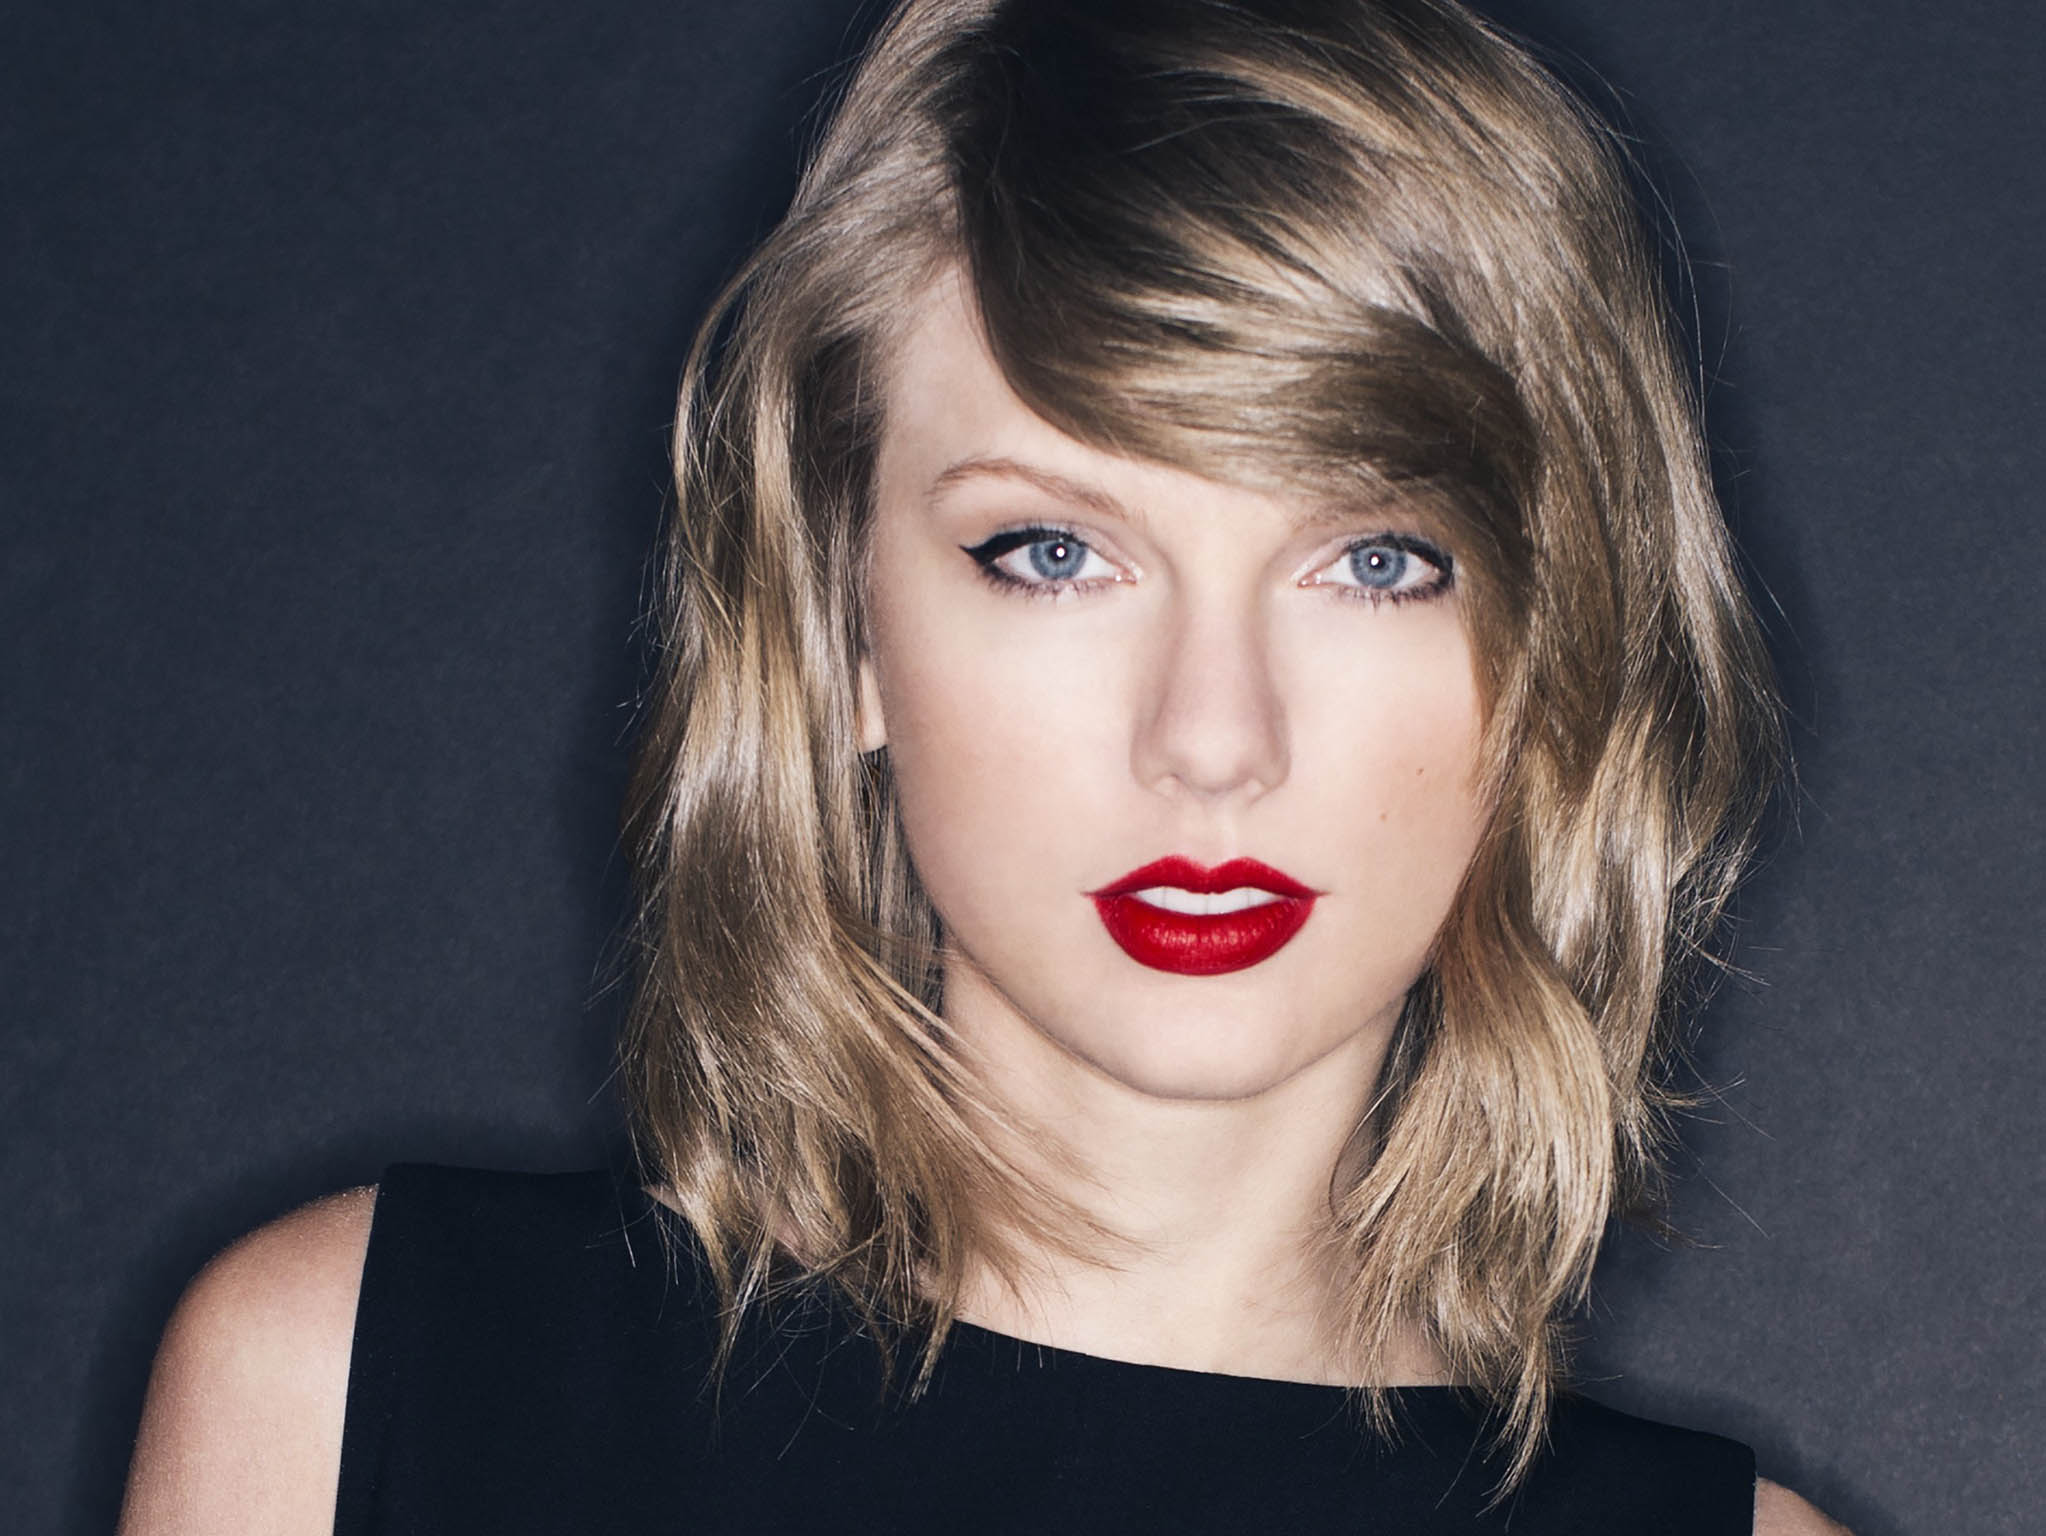 Taylor Swift Says She Does Not Use Music As A Weapon But Her